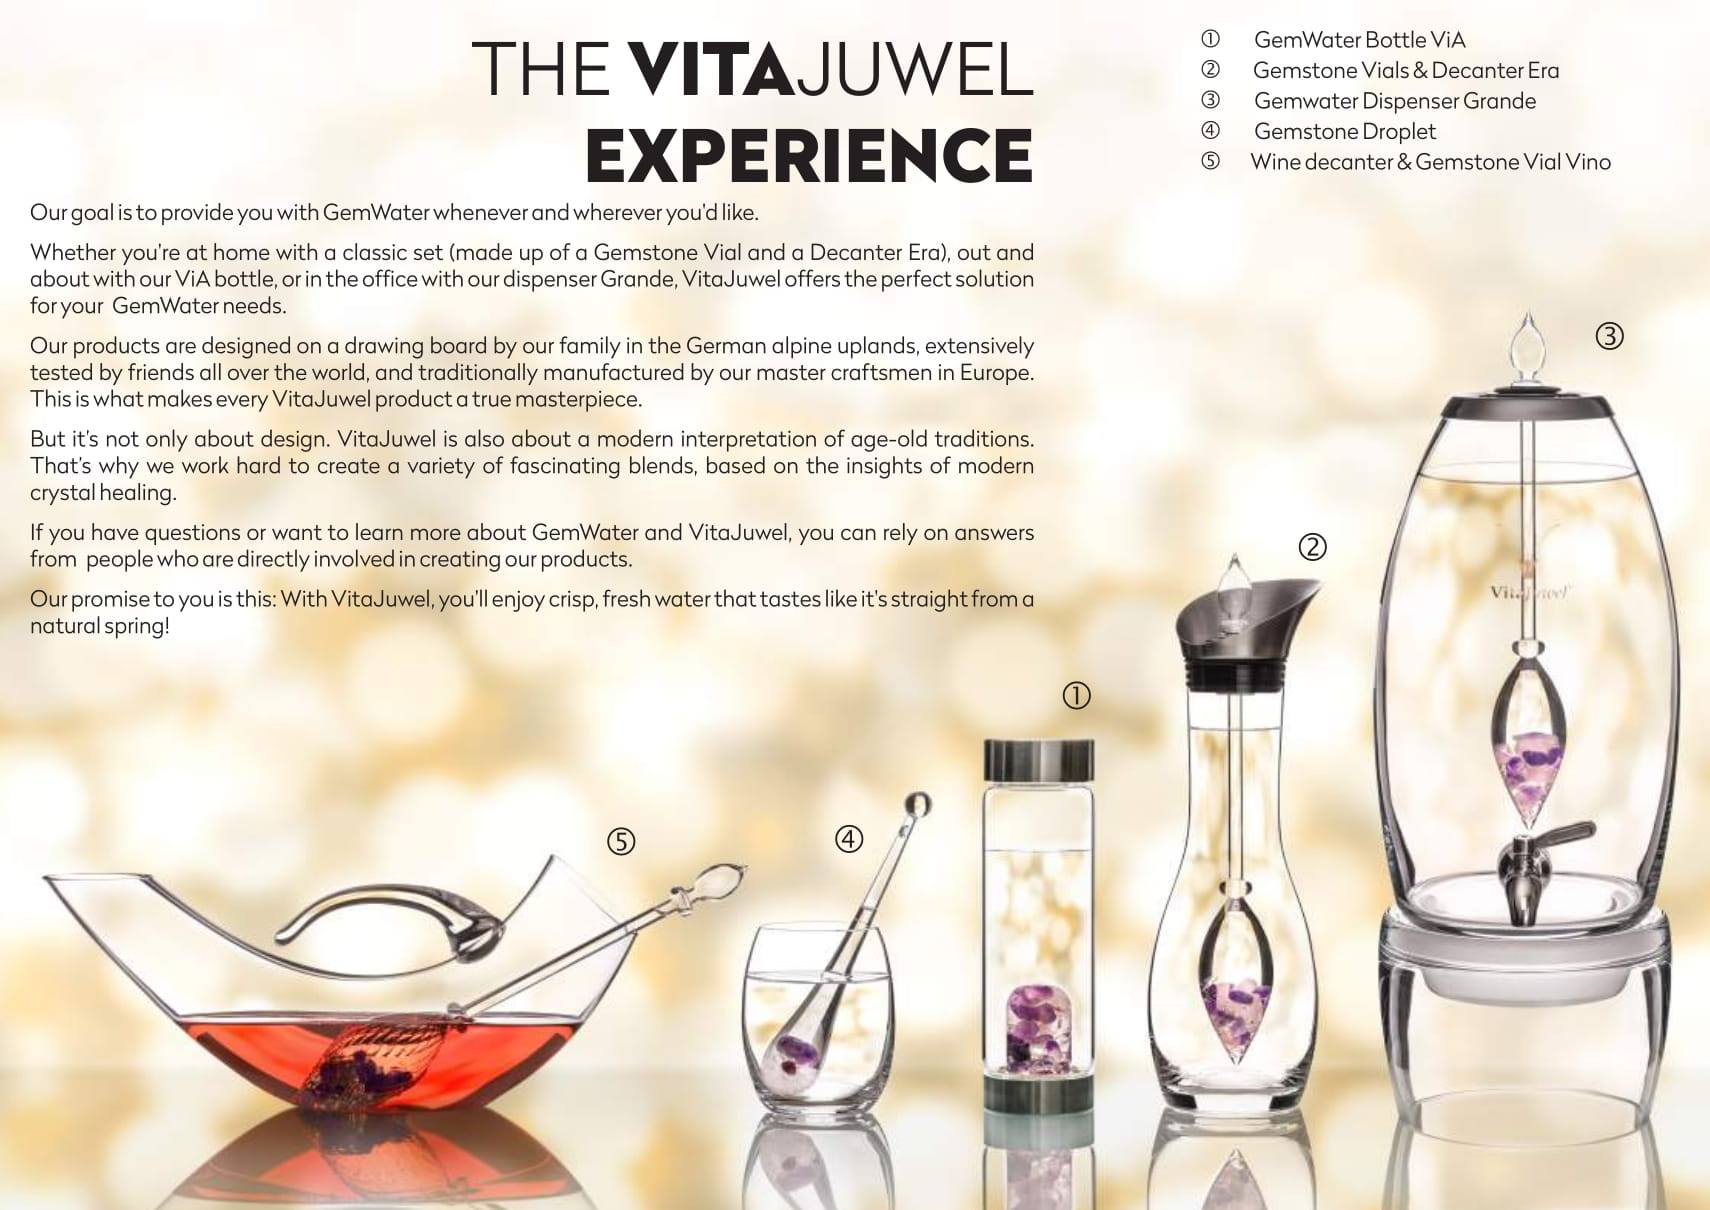 Vitajuwel Era Decanter with WELLNESS Gemstone Vial. Glass Gemwater Carafe. Amethyst Water - claritycove.com